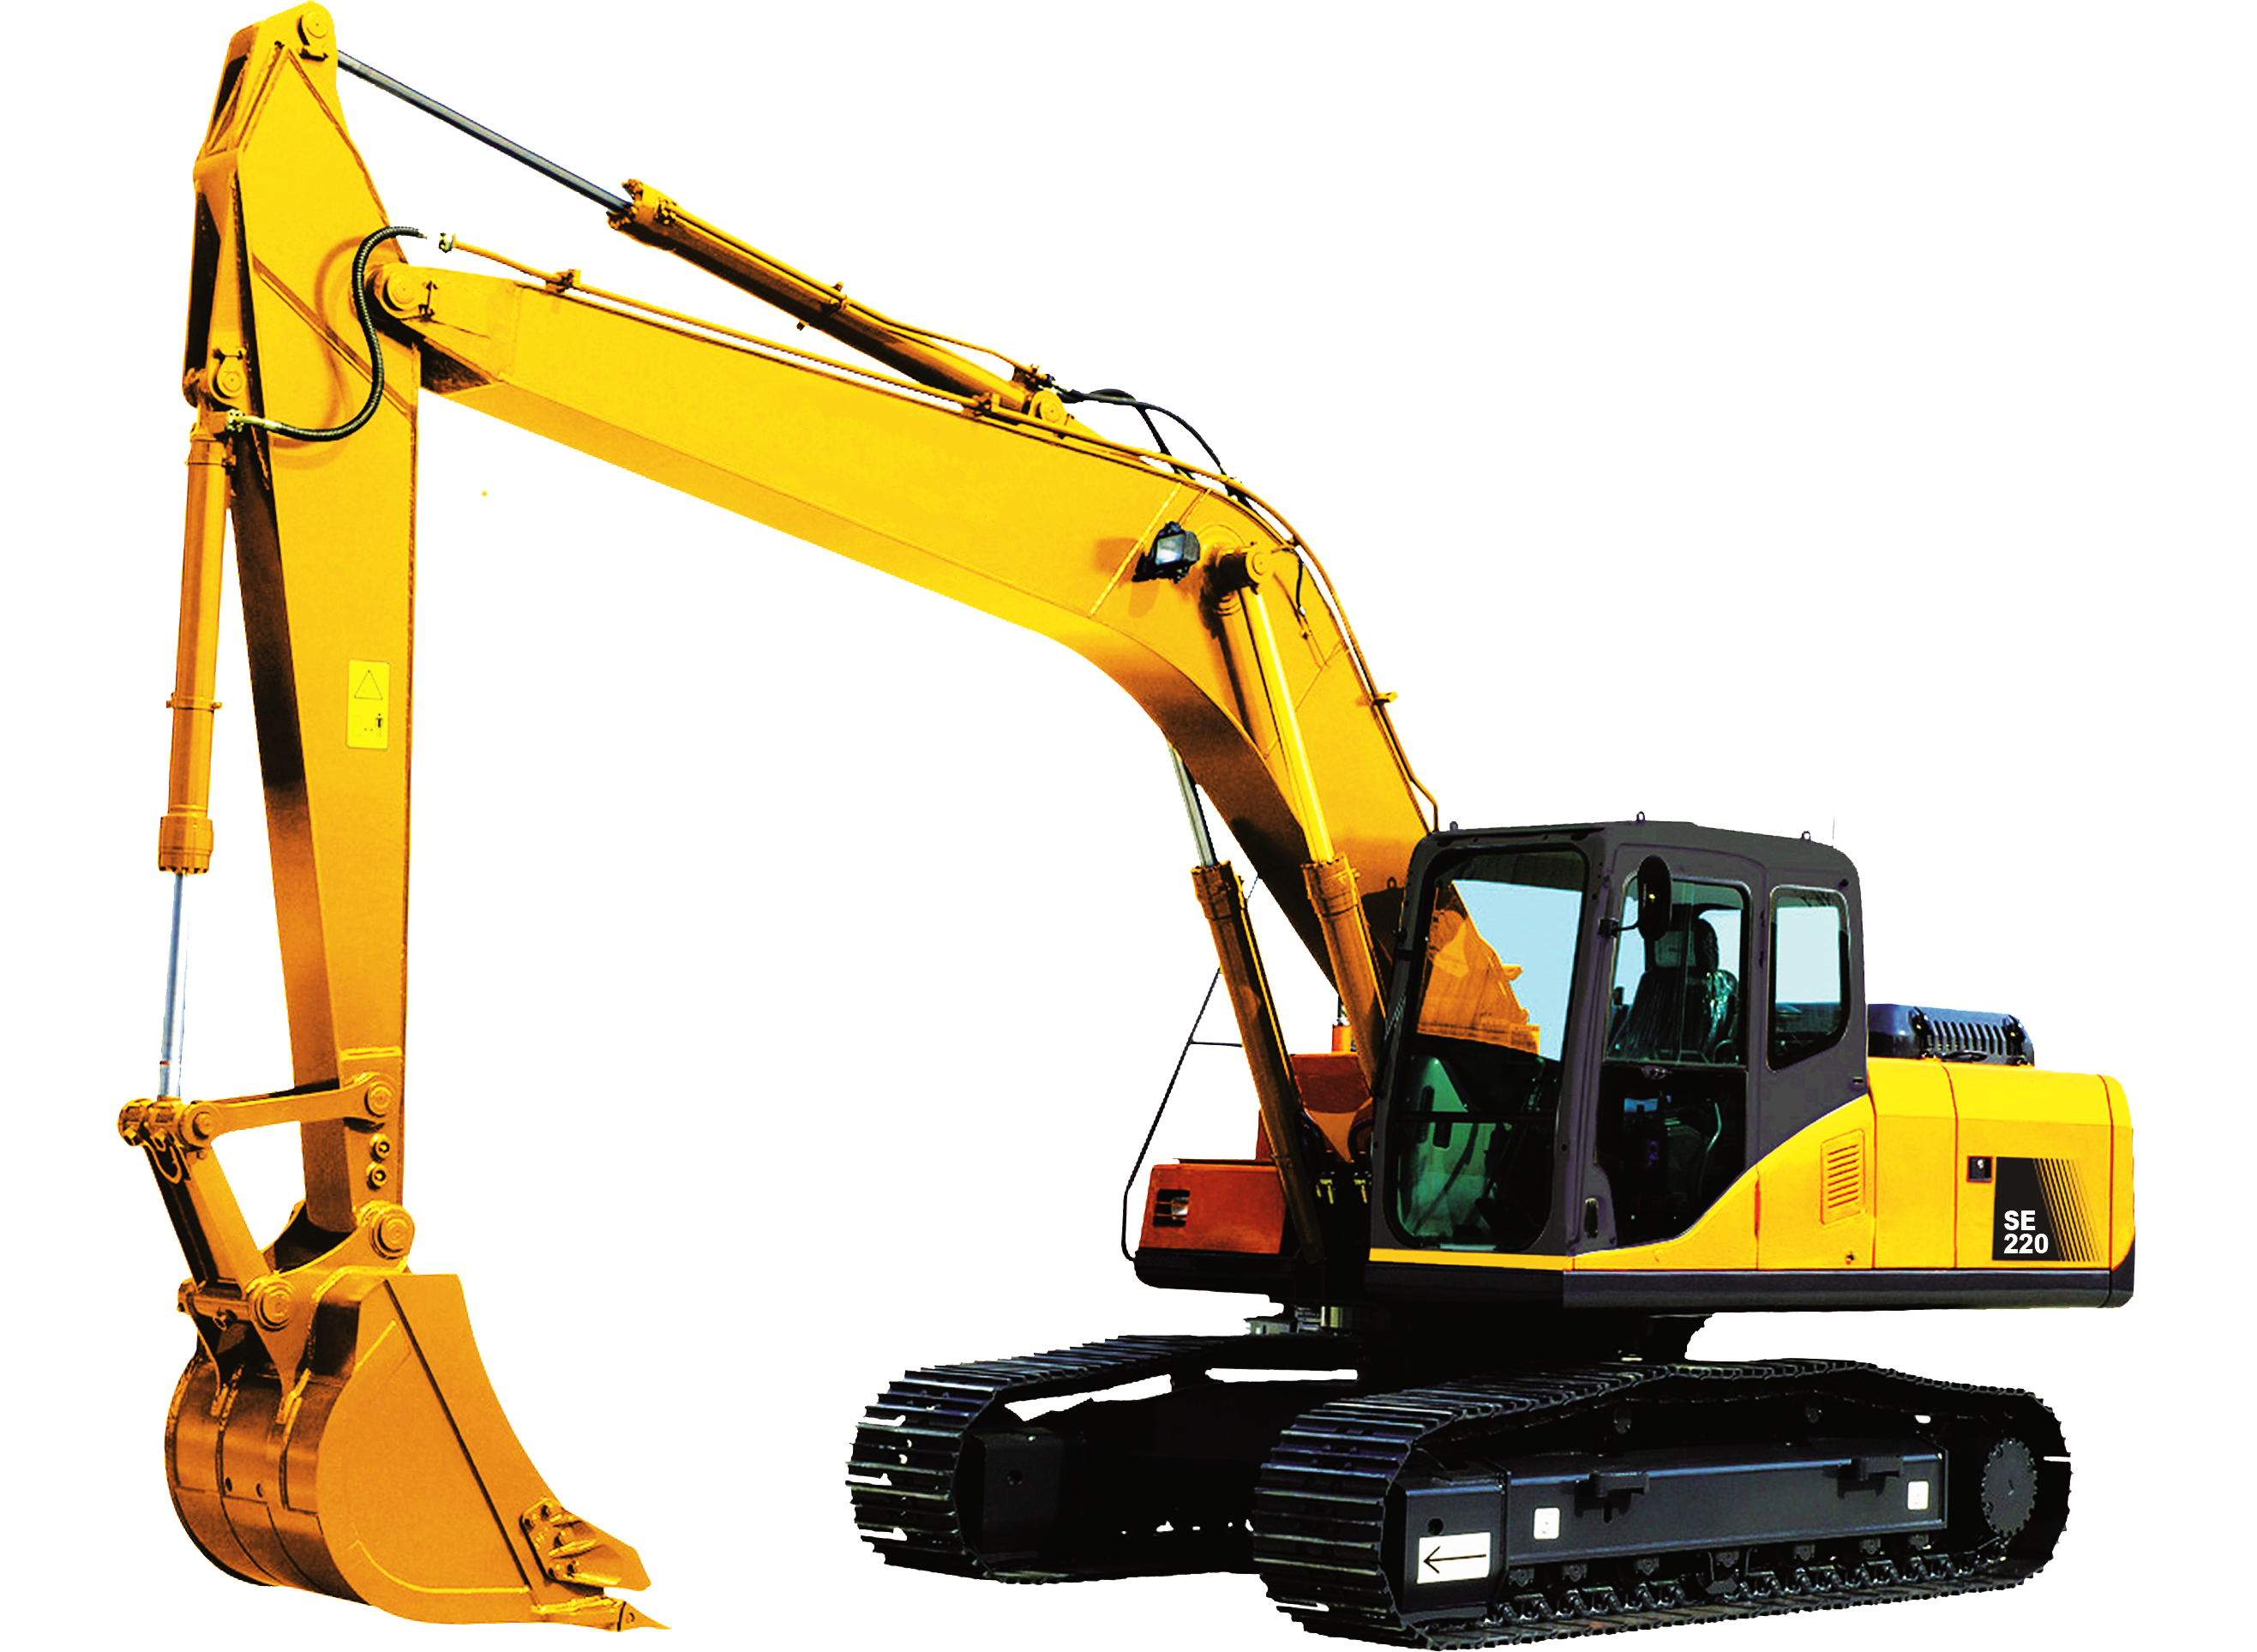 Cat backhoe clipart banner stock Excavator PNG images free download banner stock